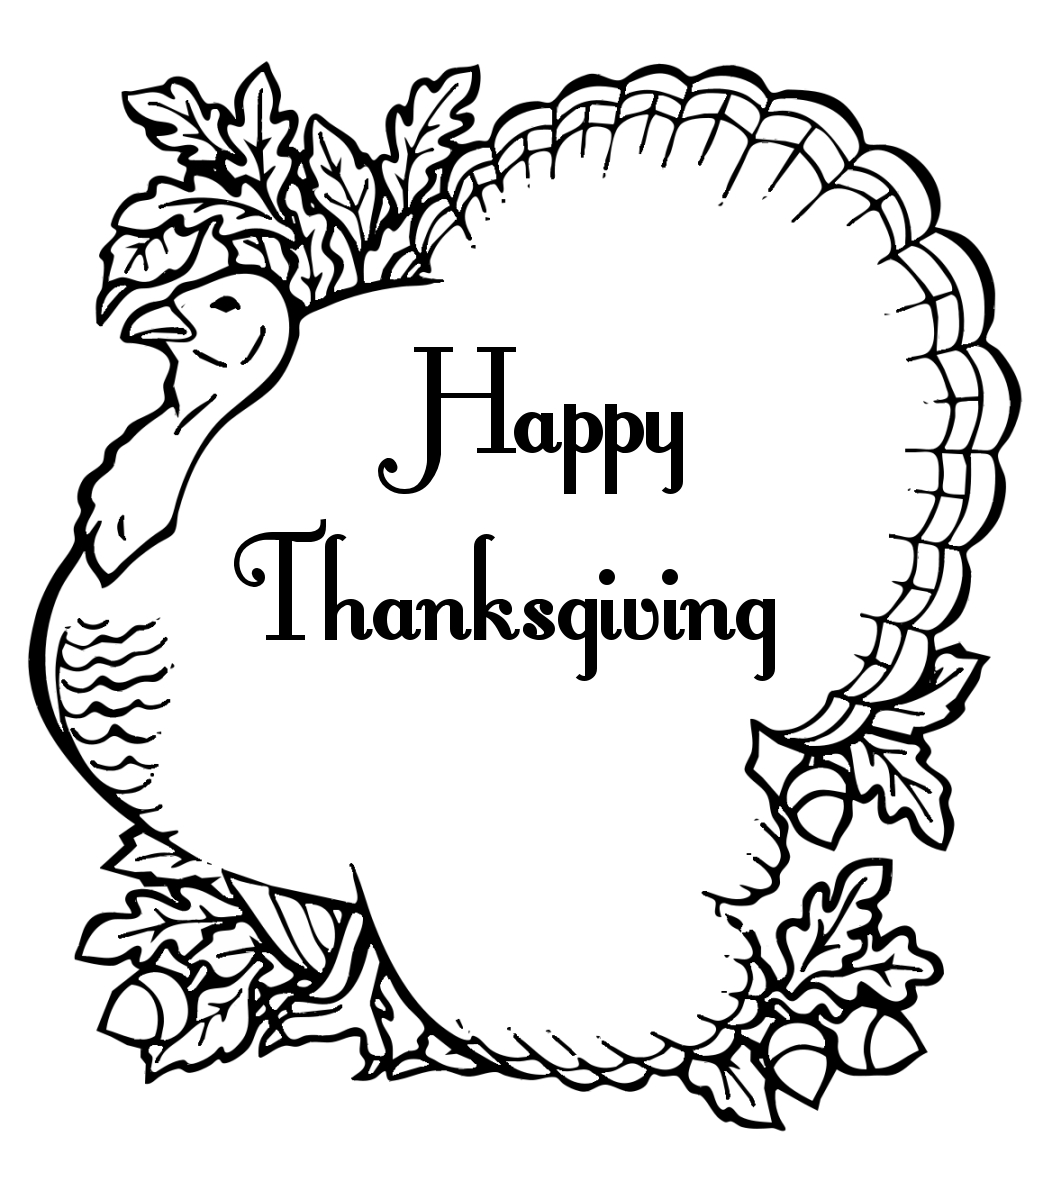 Thanksgiving clipart black and white Best of Free Black And.